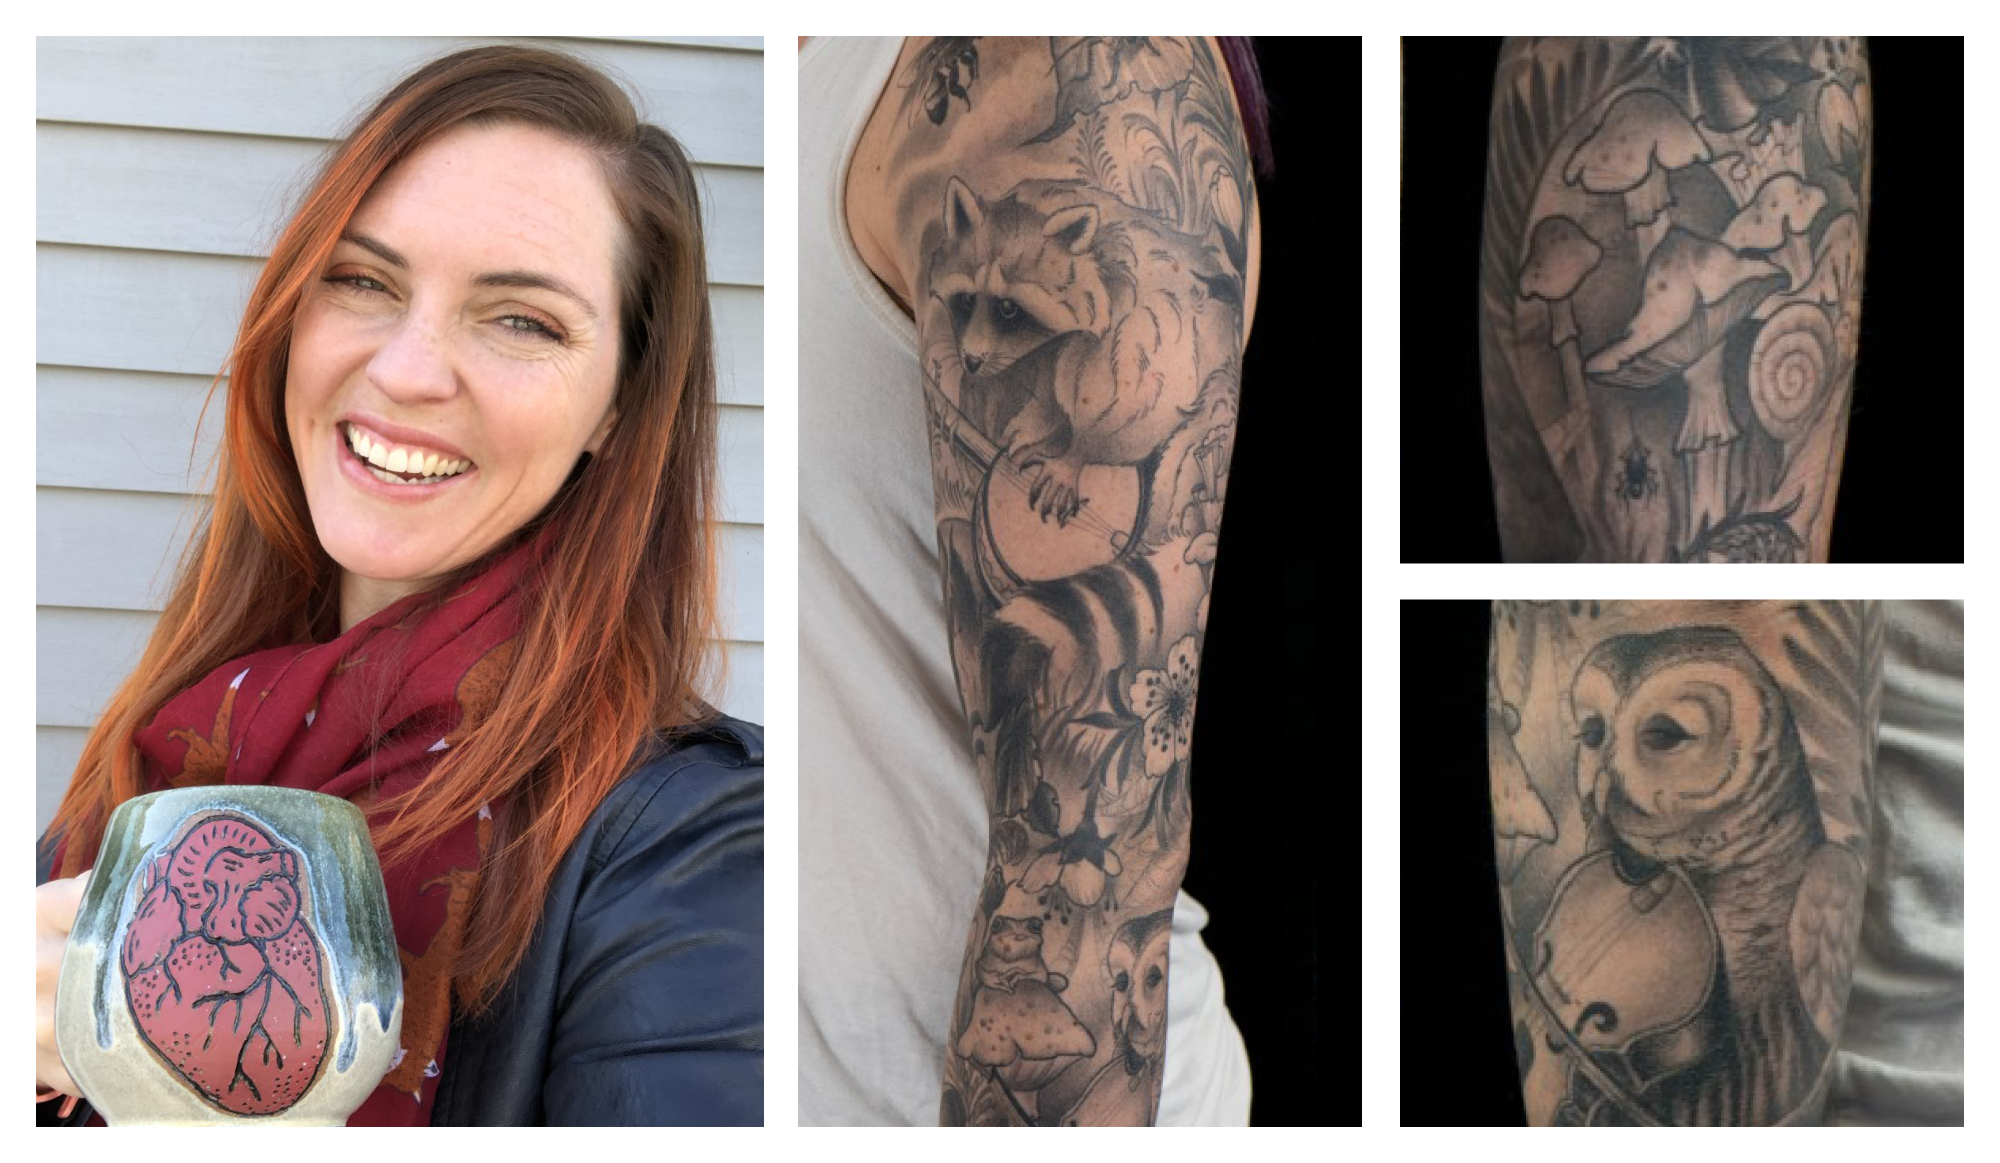 Photo collage of Kimberly McCabe and her tattoo depicting woodland animals playing instruments around a campfire